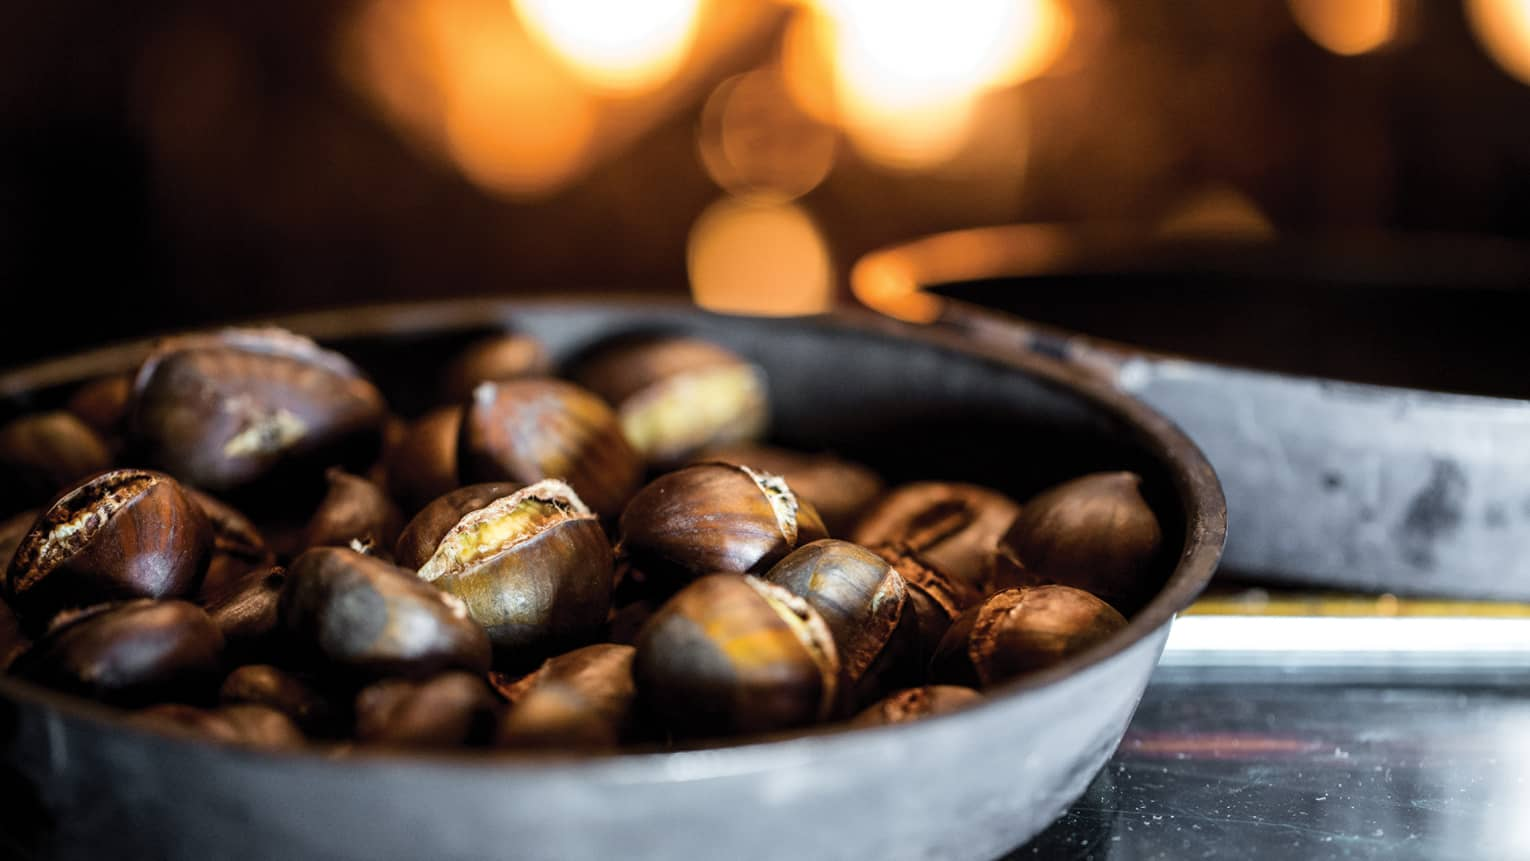 Zuppa di Castagne, chestnuts in stainless-steel pan in front of a fire